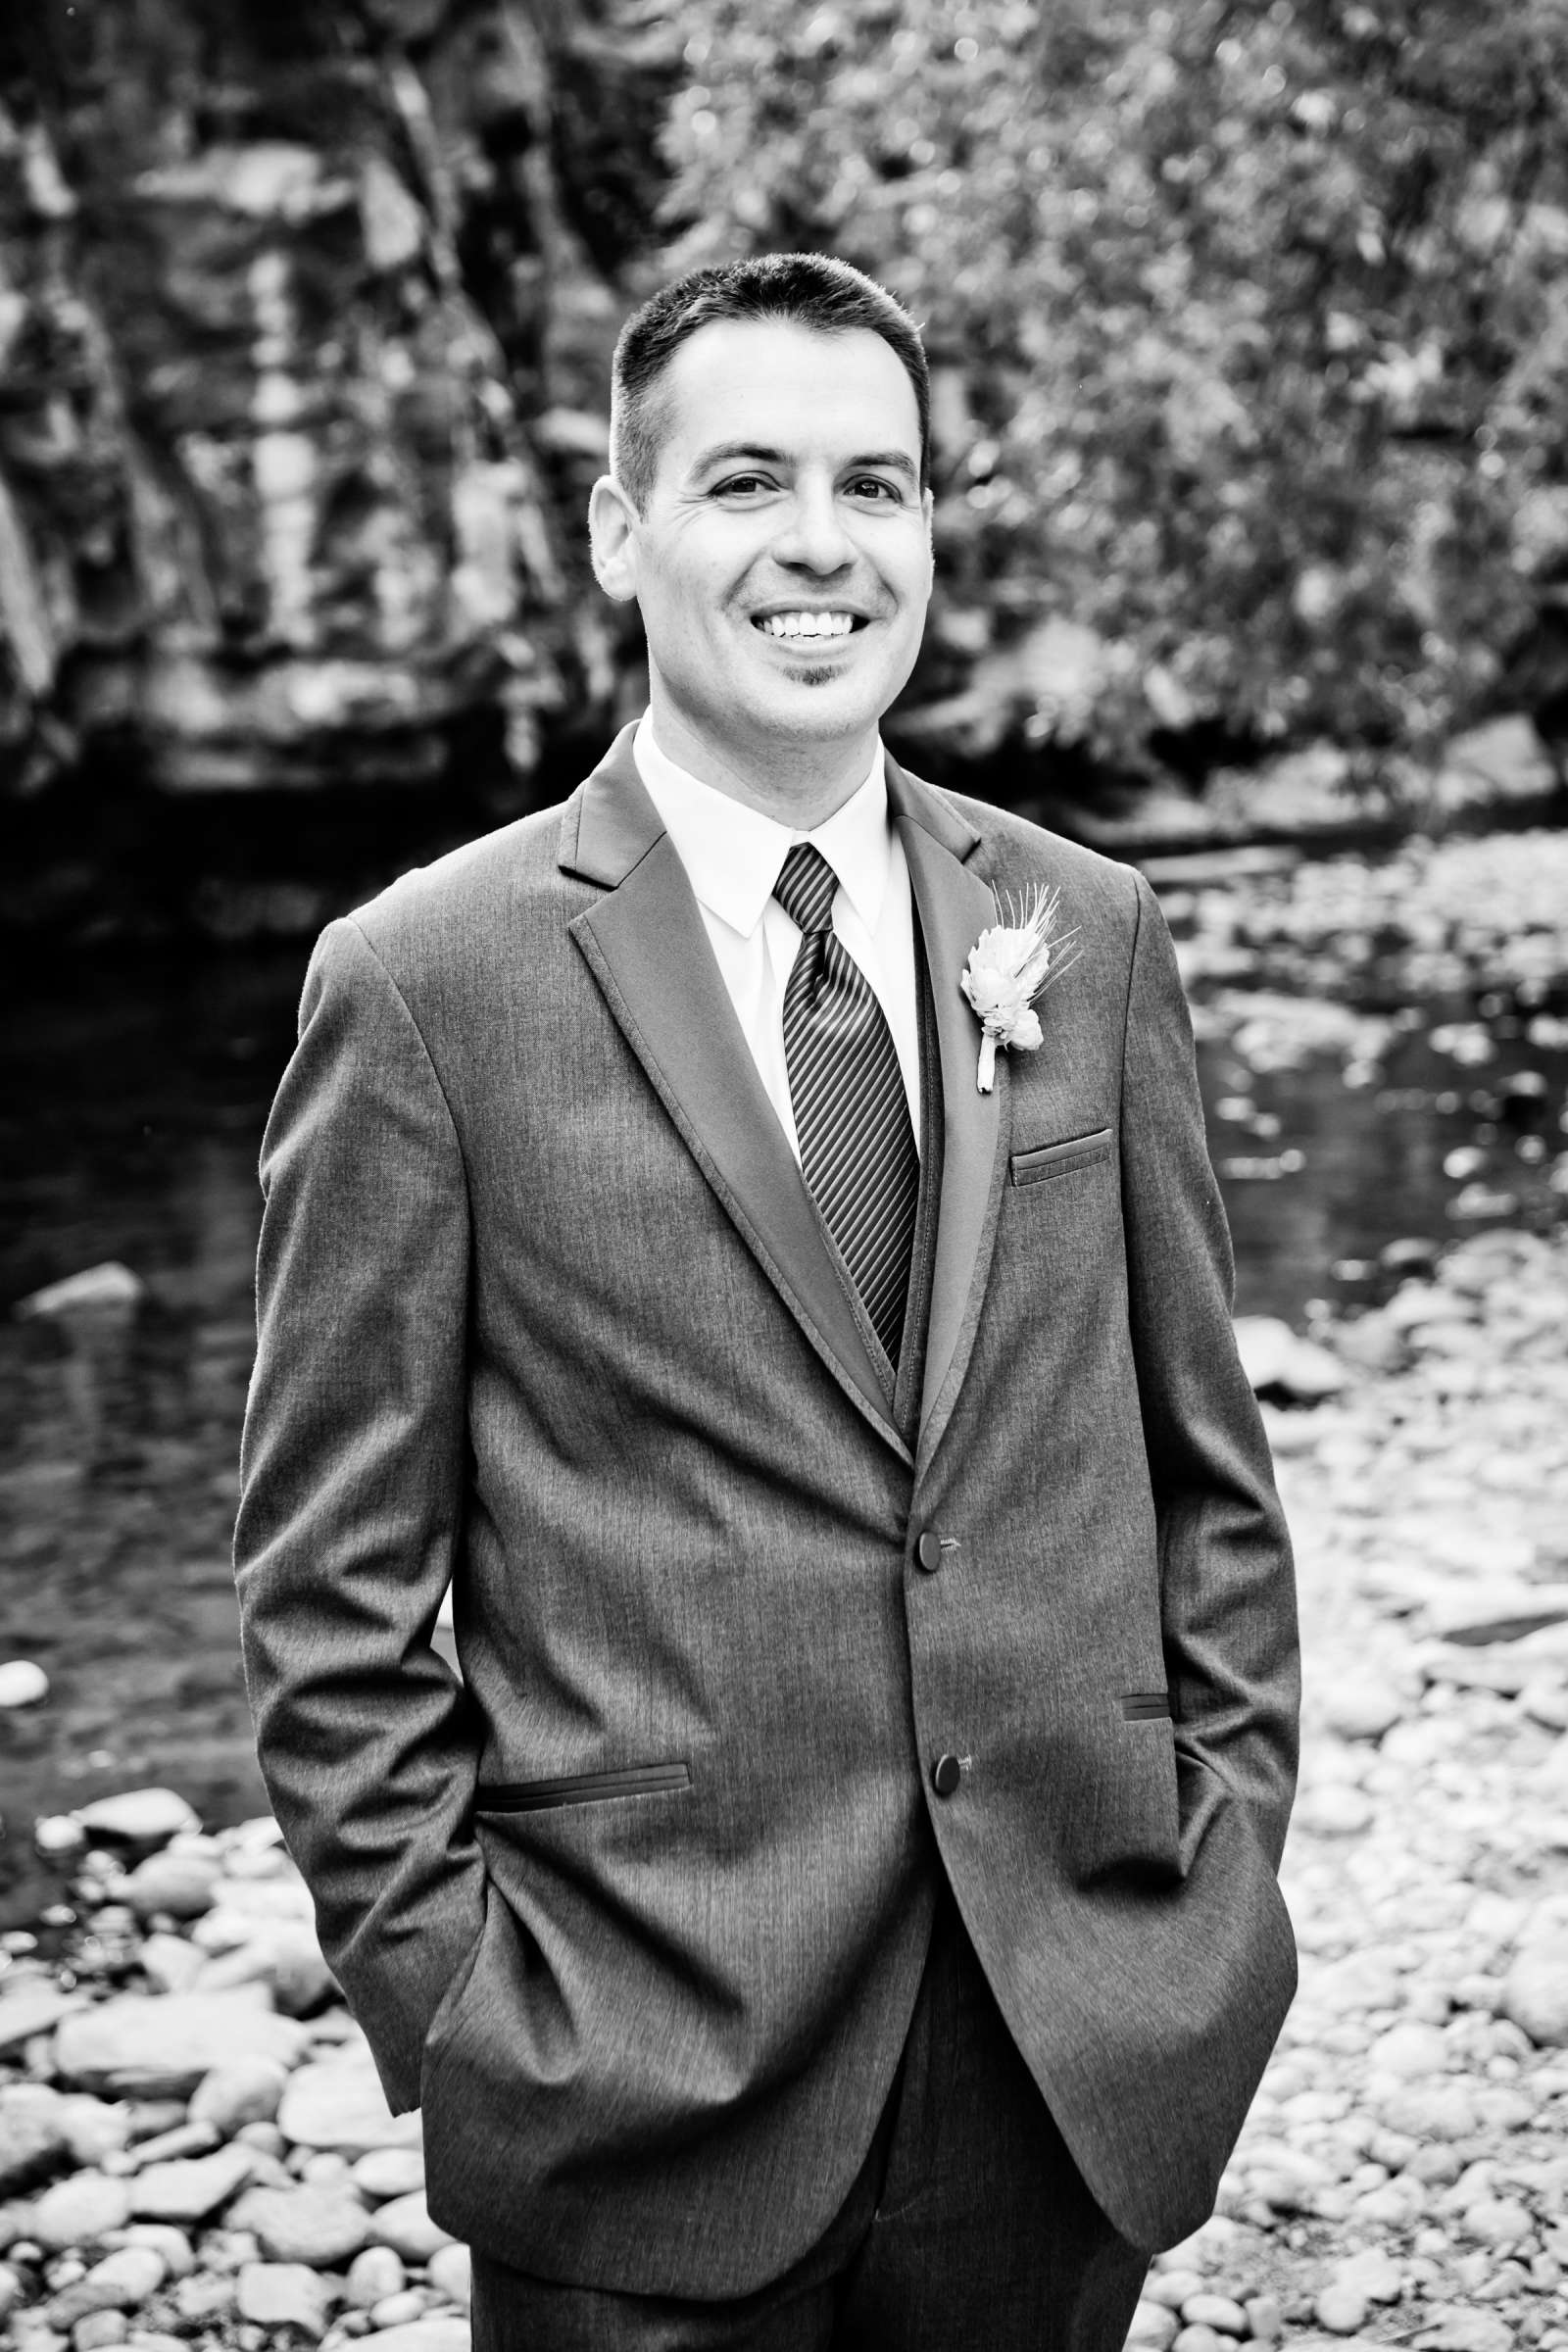 The Lyons Farmette Wedding, Tiffany and J. Travis Wedding Photo #9 by True Photography